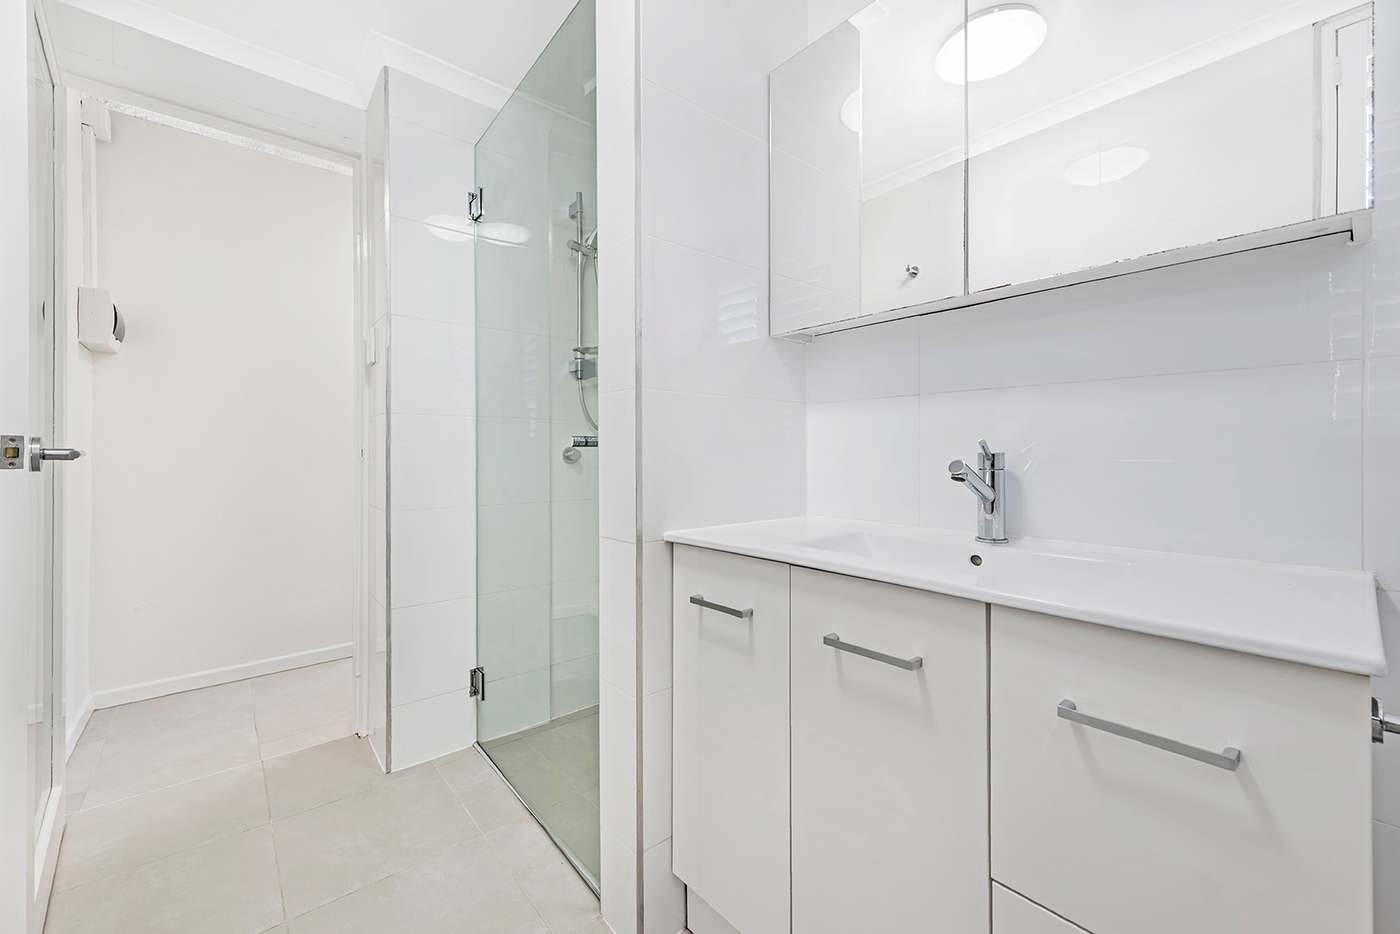 Seventh view of Homely house listing, 2/65 Jellicoe Street, Coorparoo QLD 4151